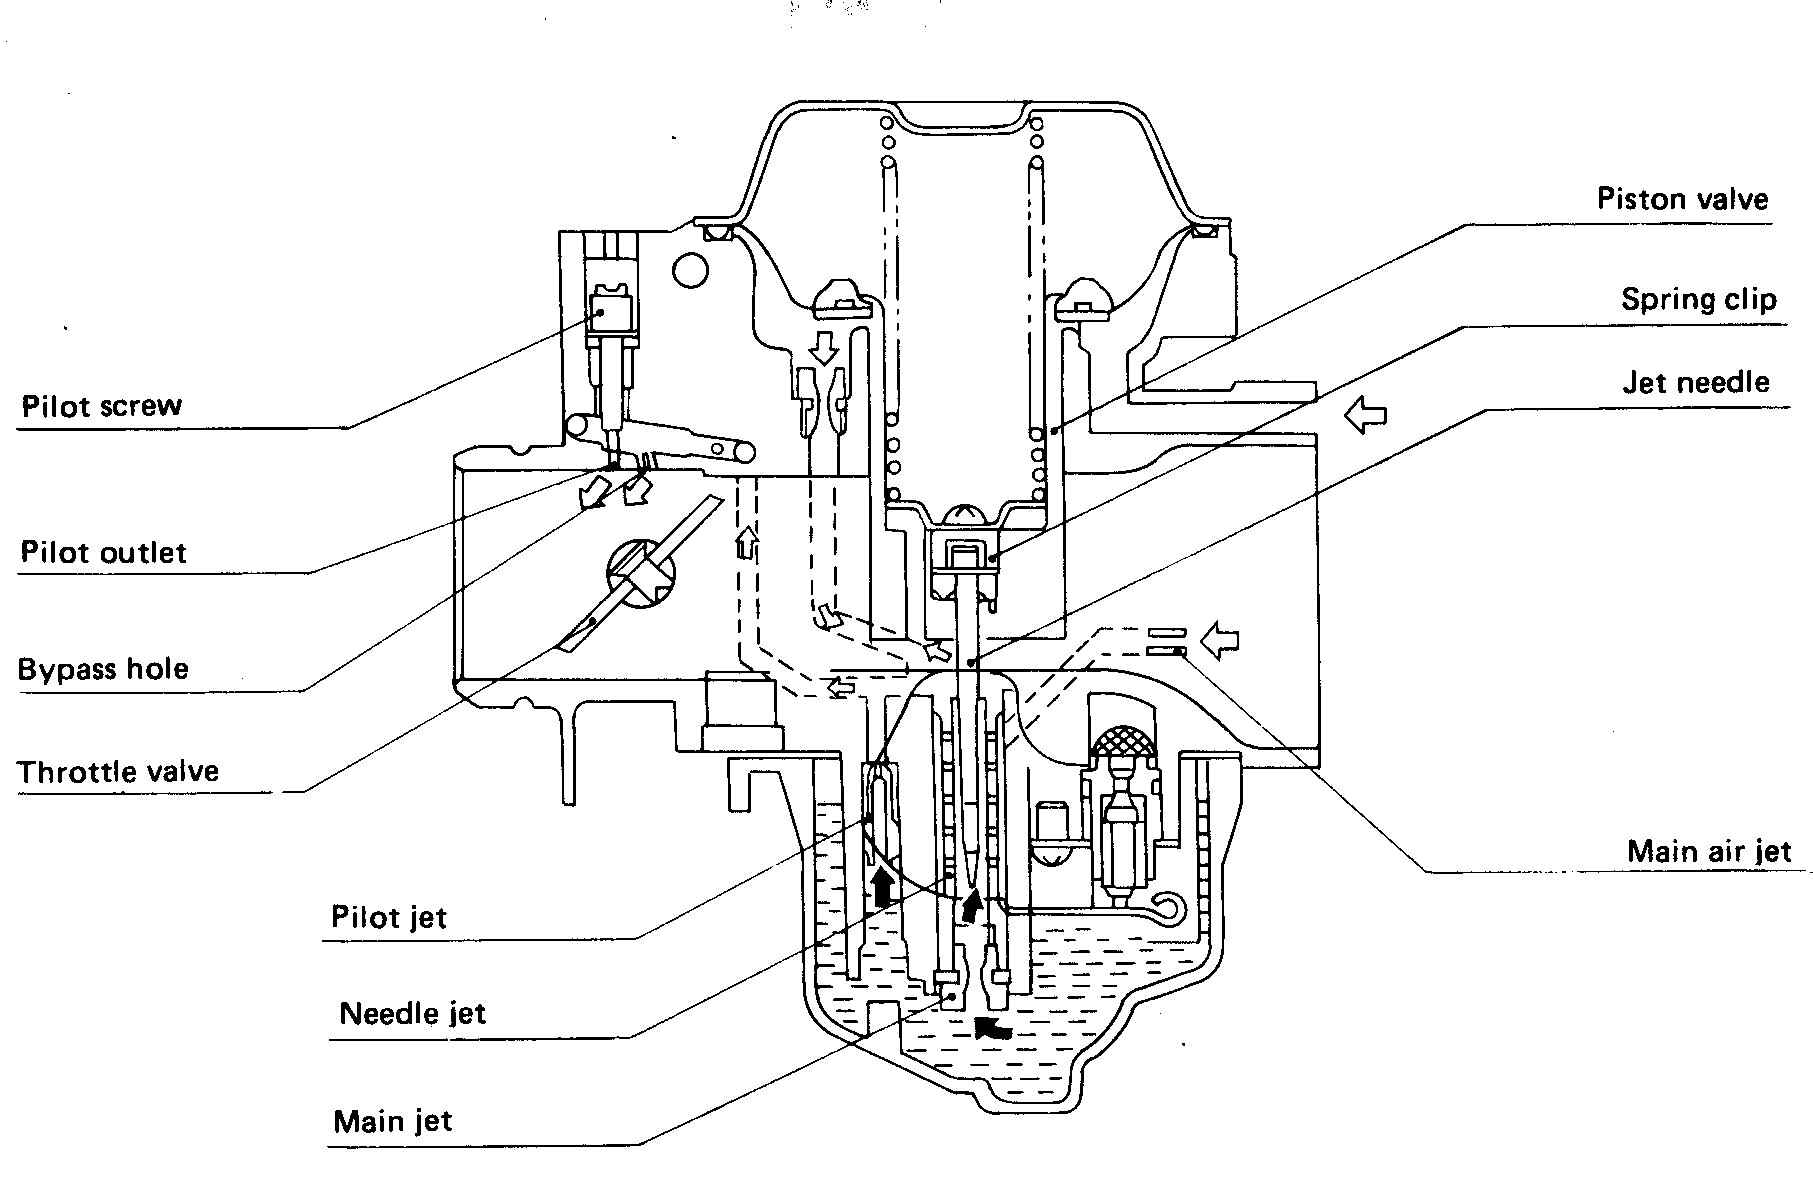 Xuanqiu 88582   smenprosoall as well Wiring Diagram For 3hp Sprinkler Pump as well Post 2001 Jetta Coolant Schematic Diagram 280321 further The 7 Chakras A Beginners Guide To Your Energy System also Carbflow. on wiring flow chart